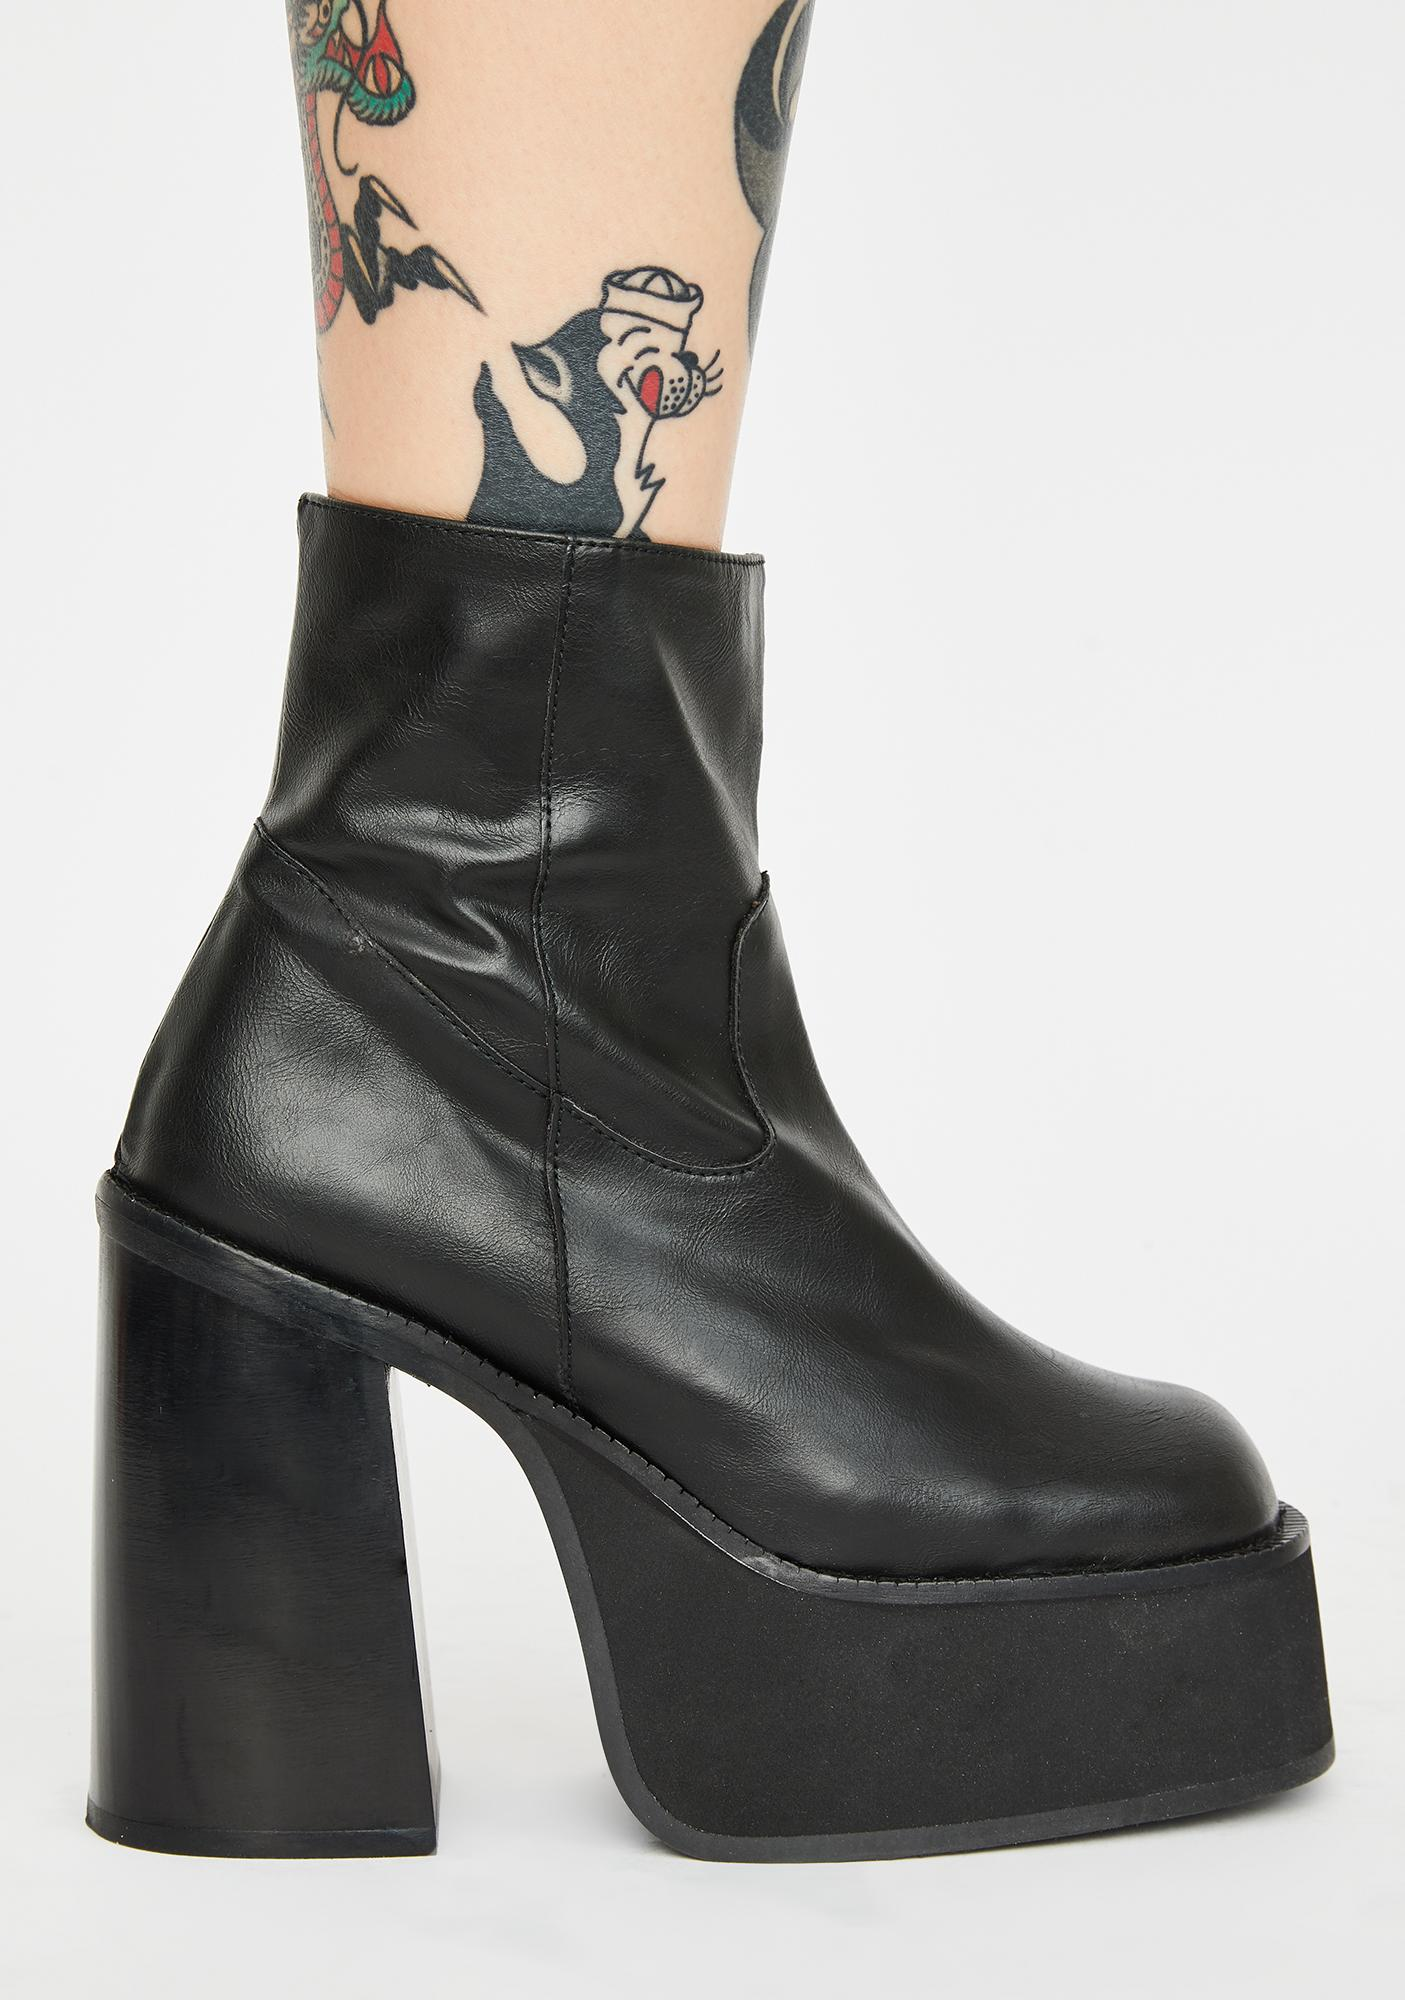 Current Mood Against The Grain Leather Platform Boots